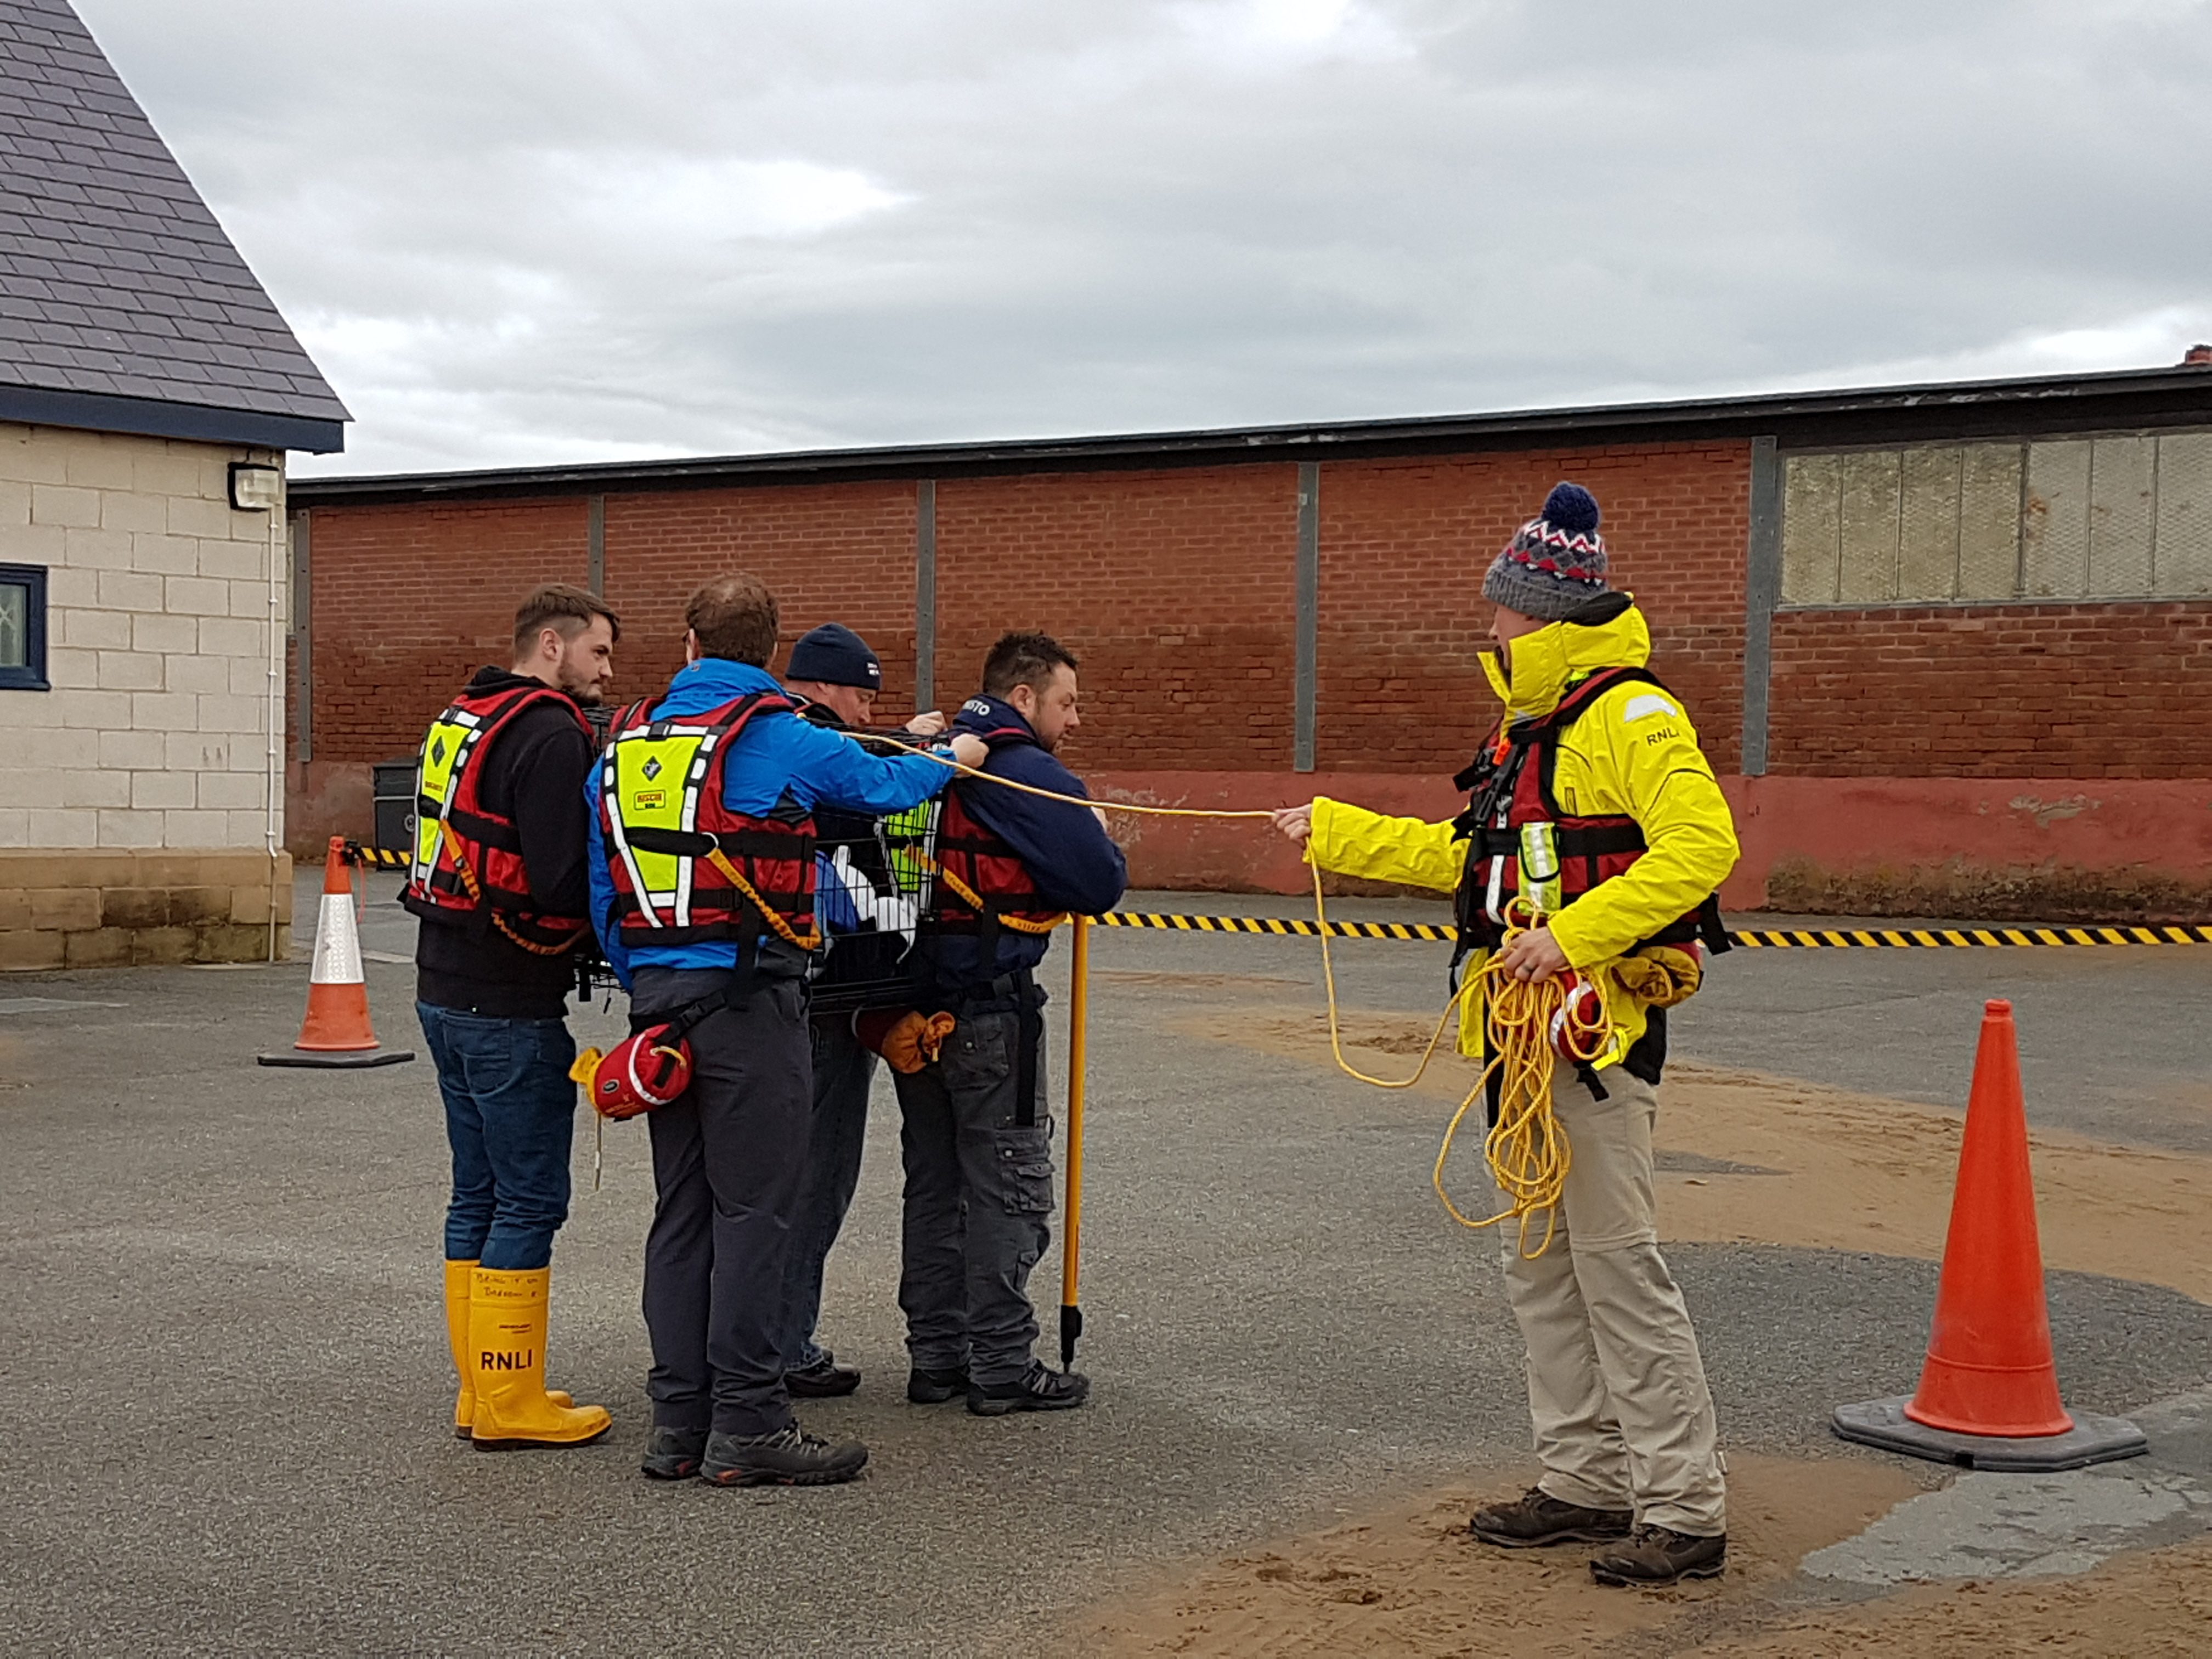 Members of the Welsh RNLI Flood Rescue Team trained with the Cumbria Community Flood Team in preparation ahead of the winter months.